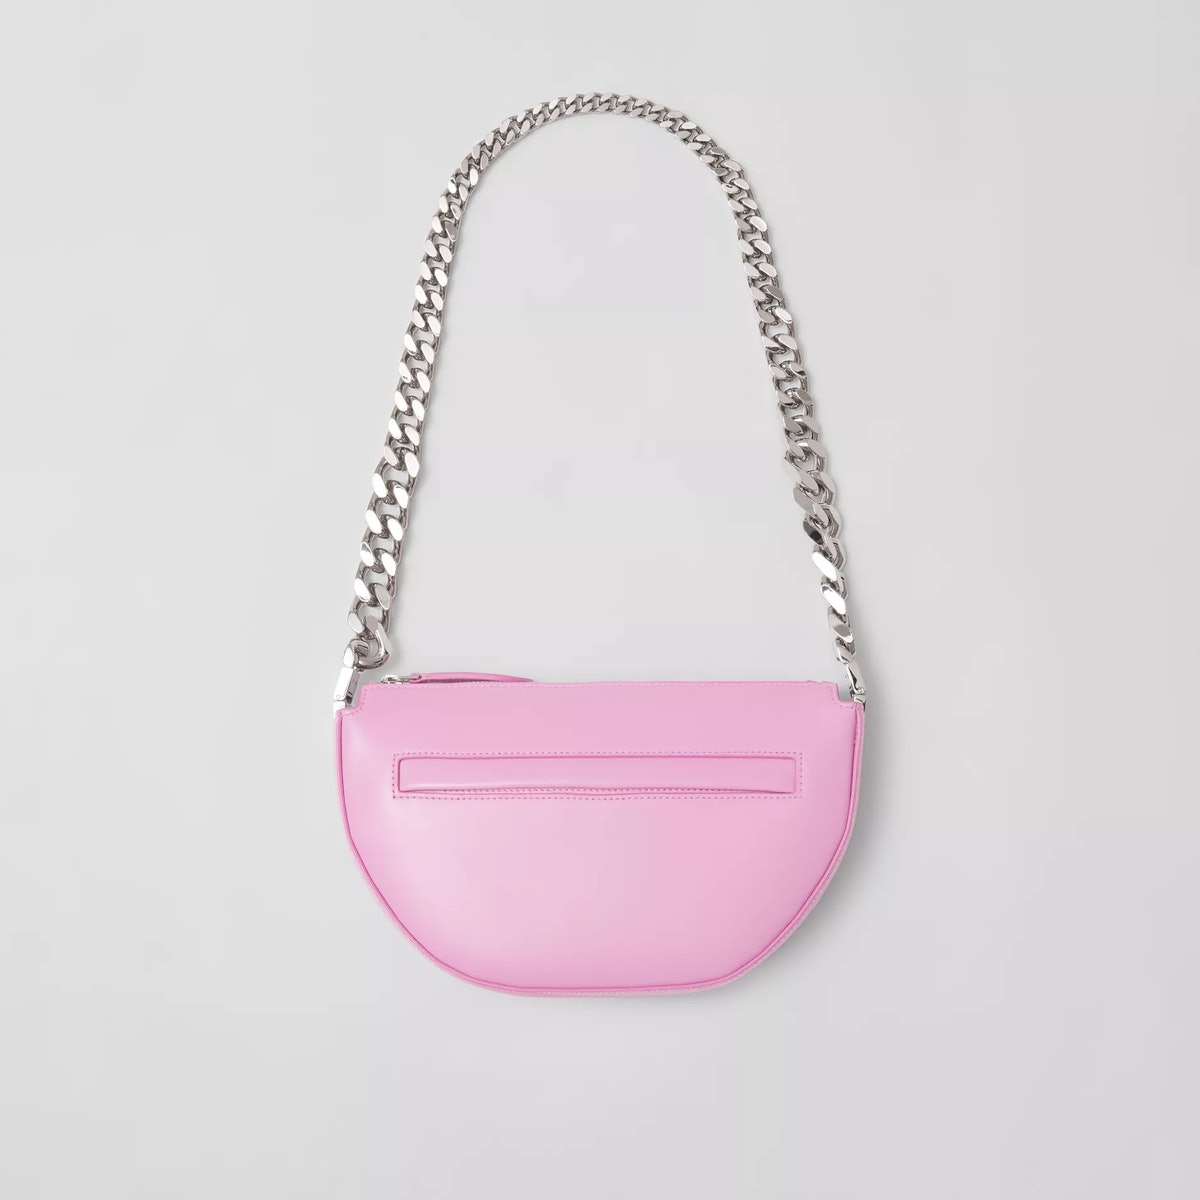 Mini Leather Zip Olympia Bag in Primrose Pink from Burberry.